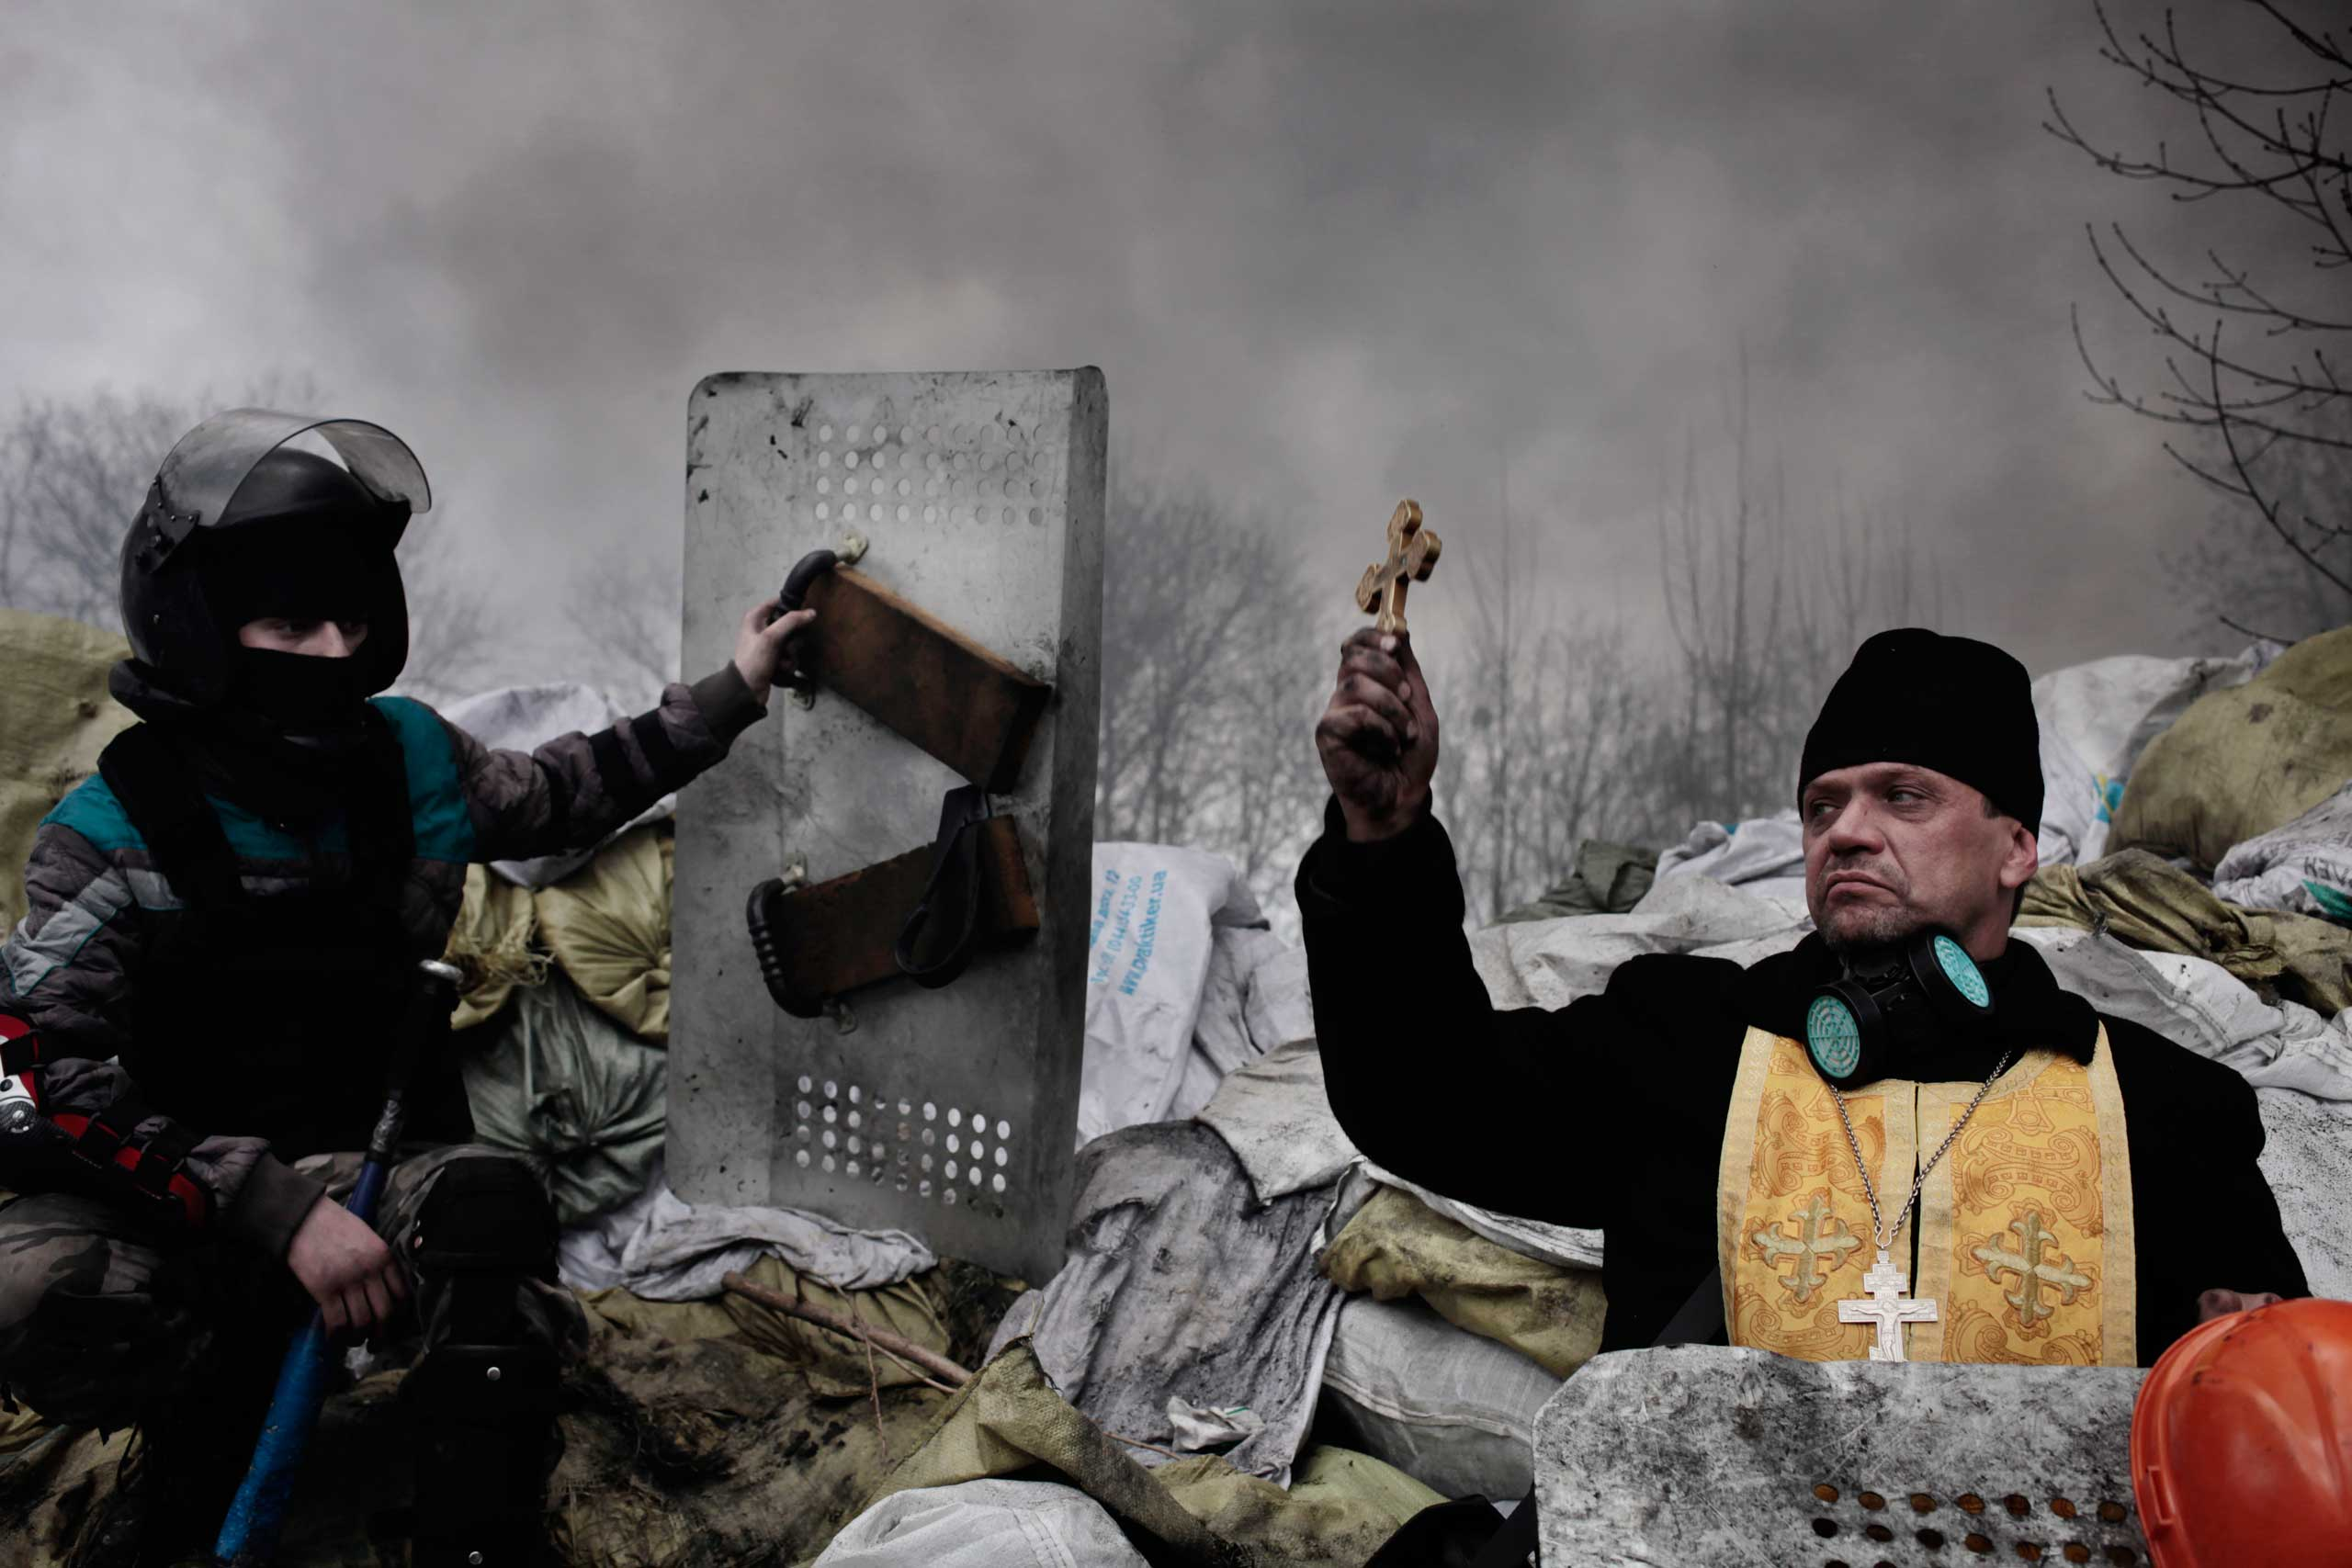 <b>Second Prize Spot News Category, Stories</b>                                   An Orthodox priest bless the protesters on a barricade in Kiev, Ukraine on Feb. 20, 2014.